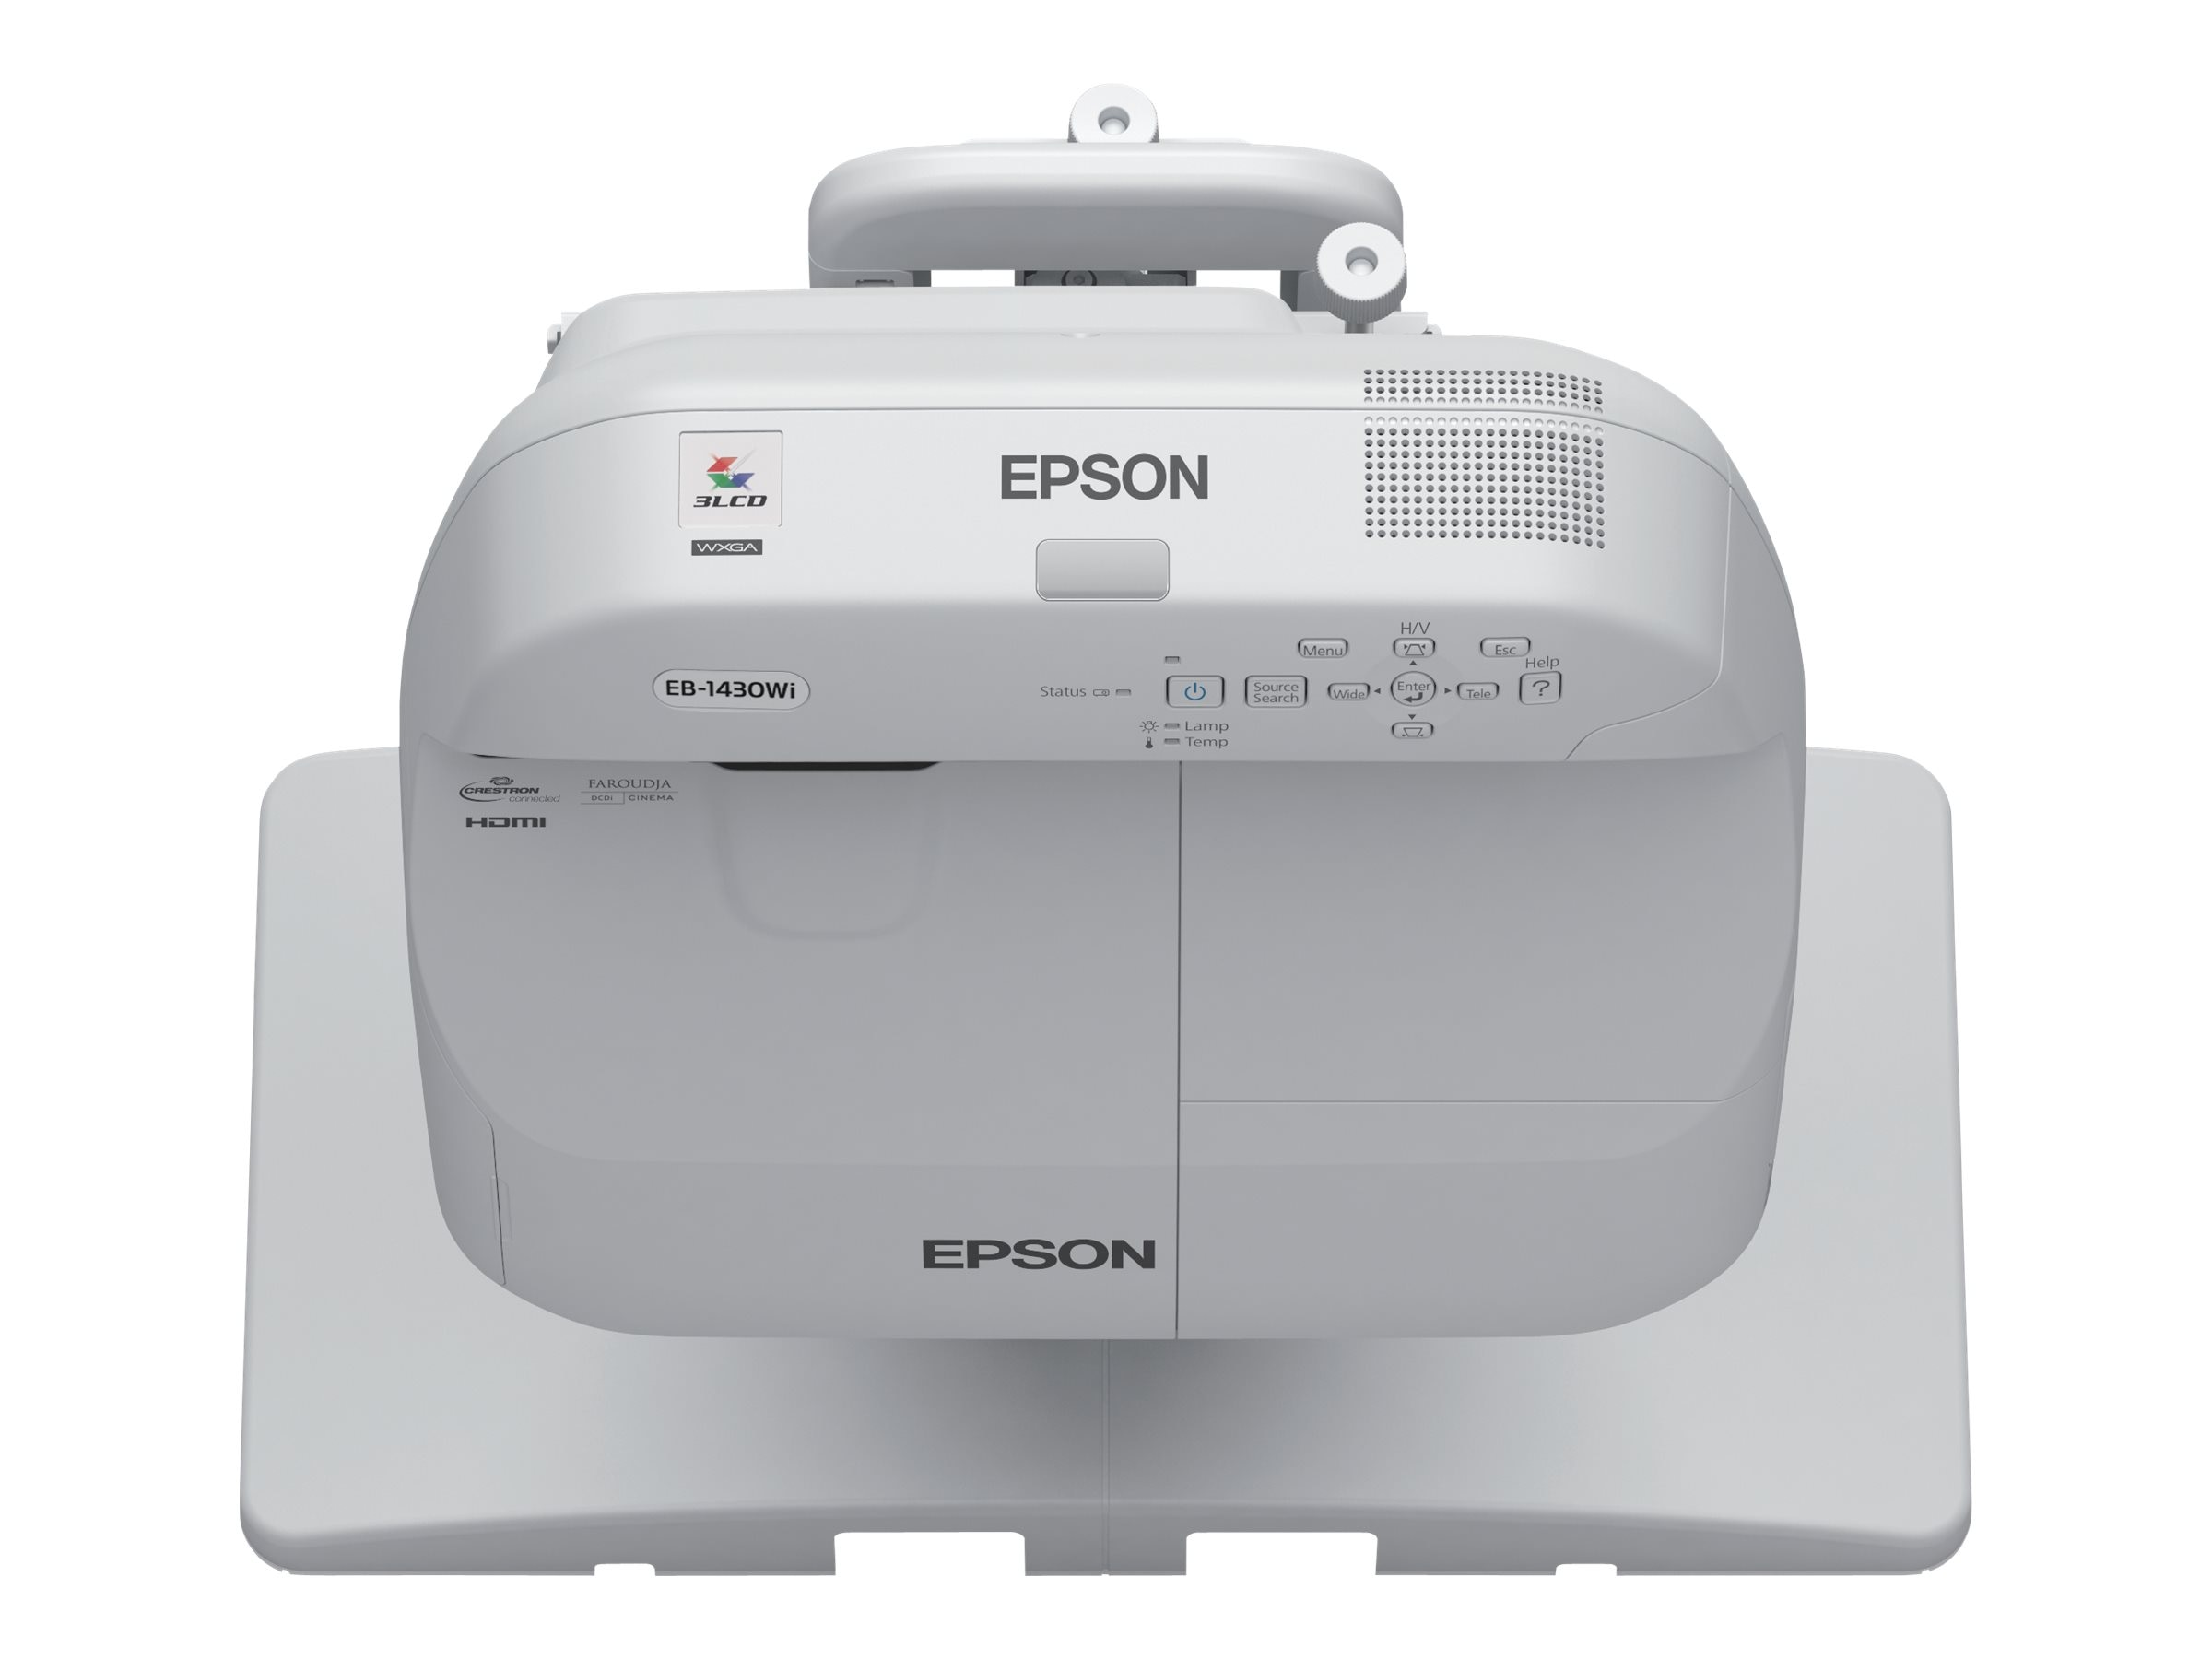 Epson BrightLink Pro 1420Wi WXGA Interactive Projector, 3300 Lumens, White with Wall Mount, V11H612520W